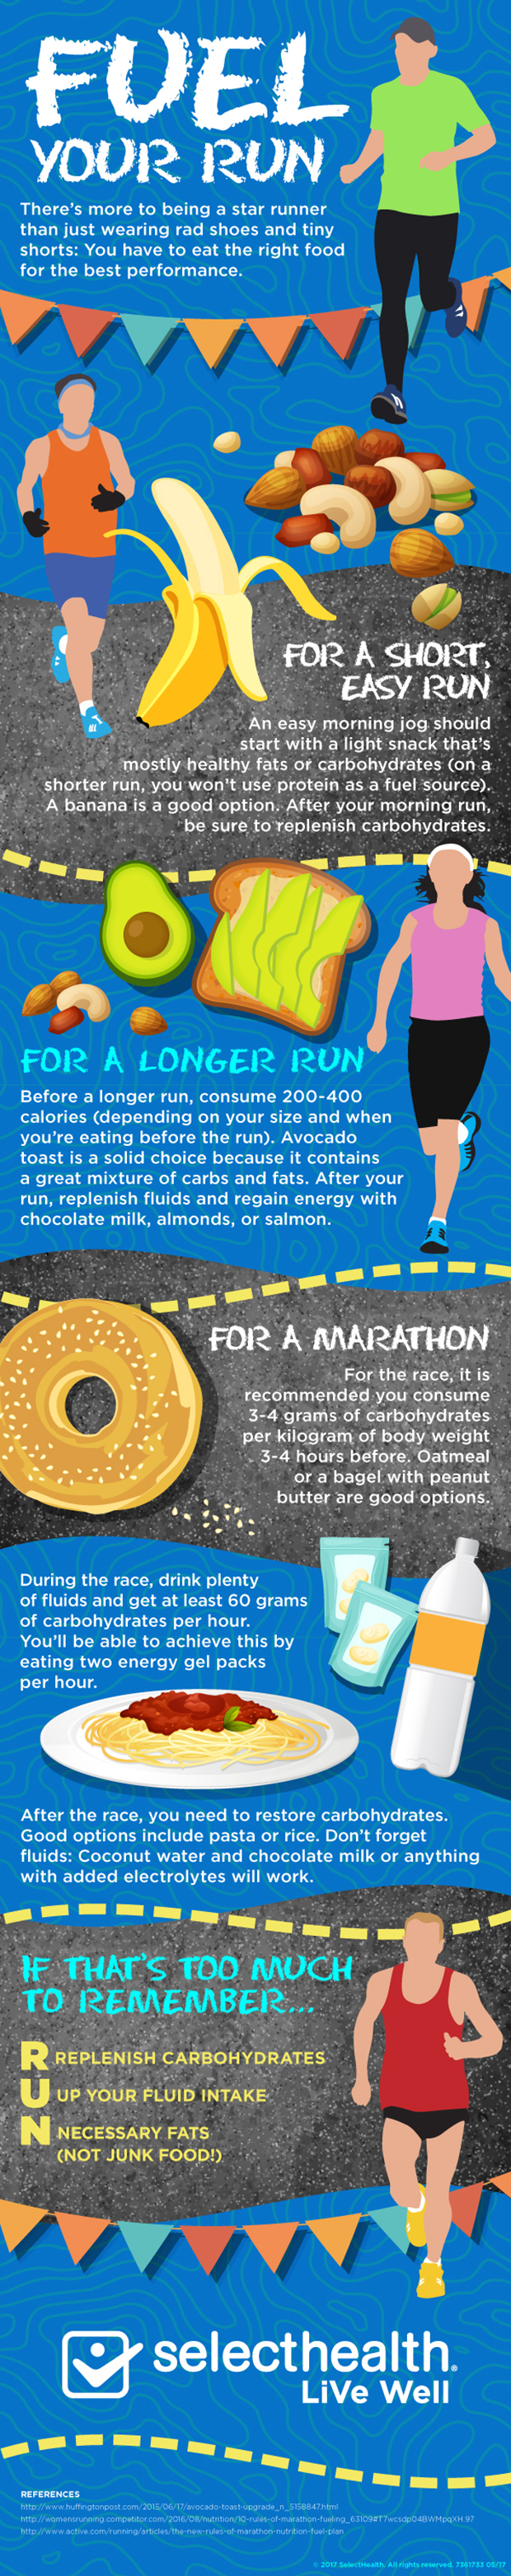 Proper fueling for race training, infographic